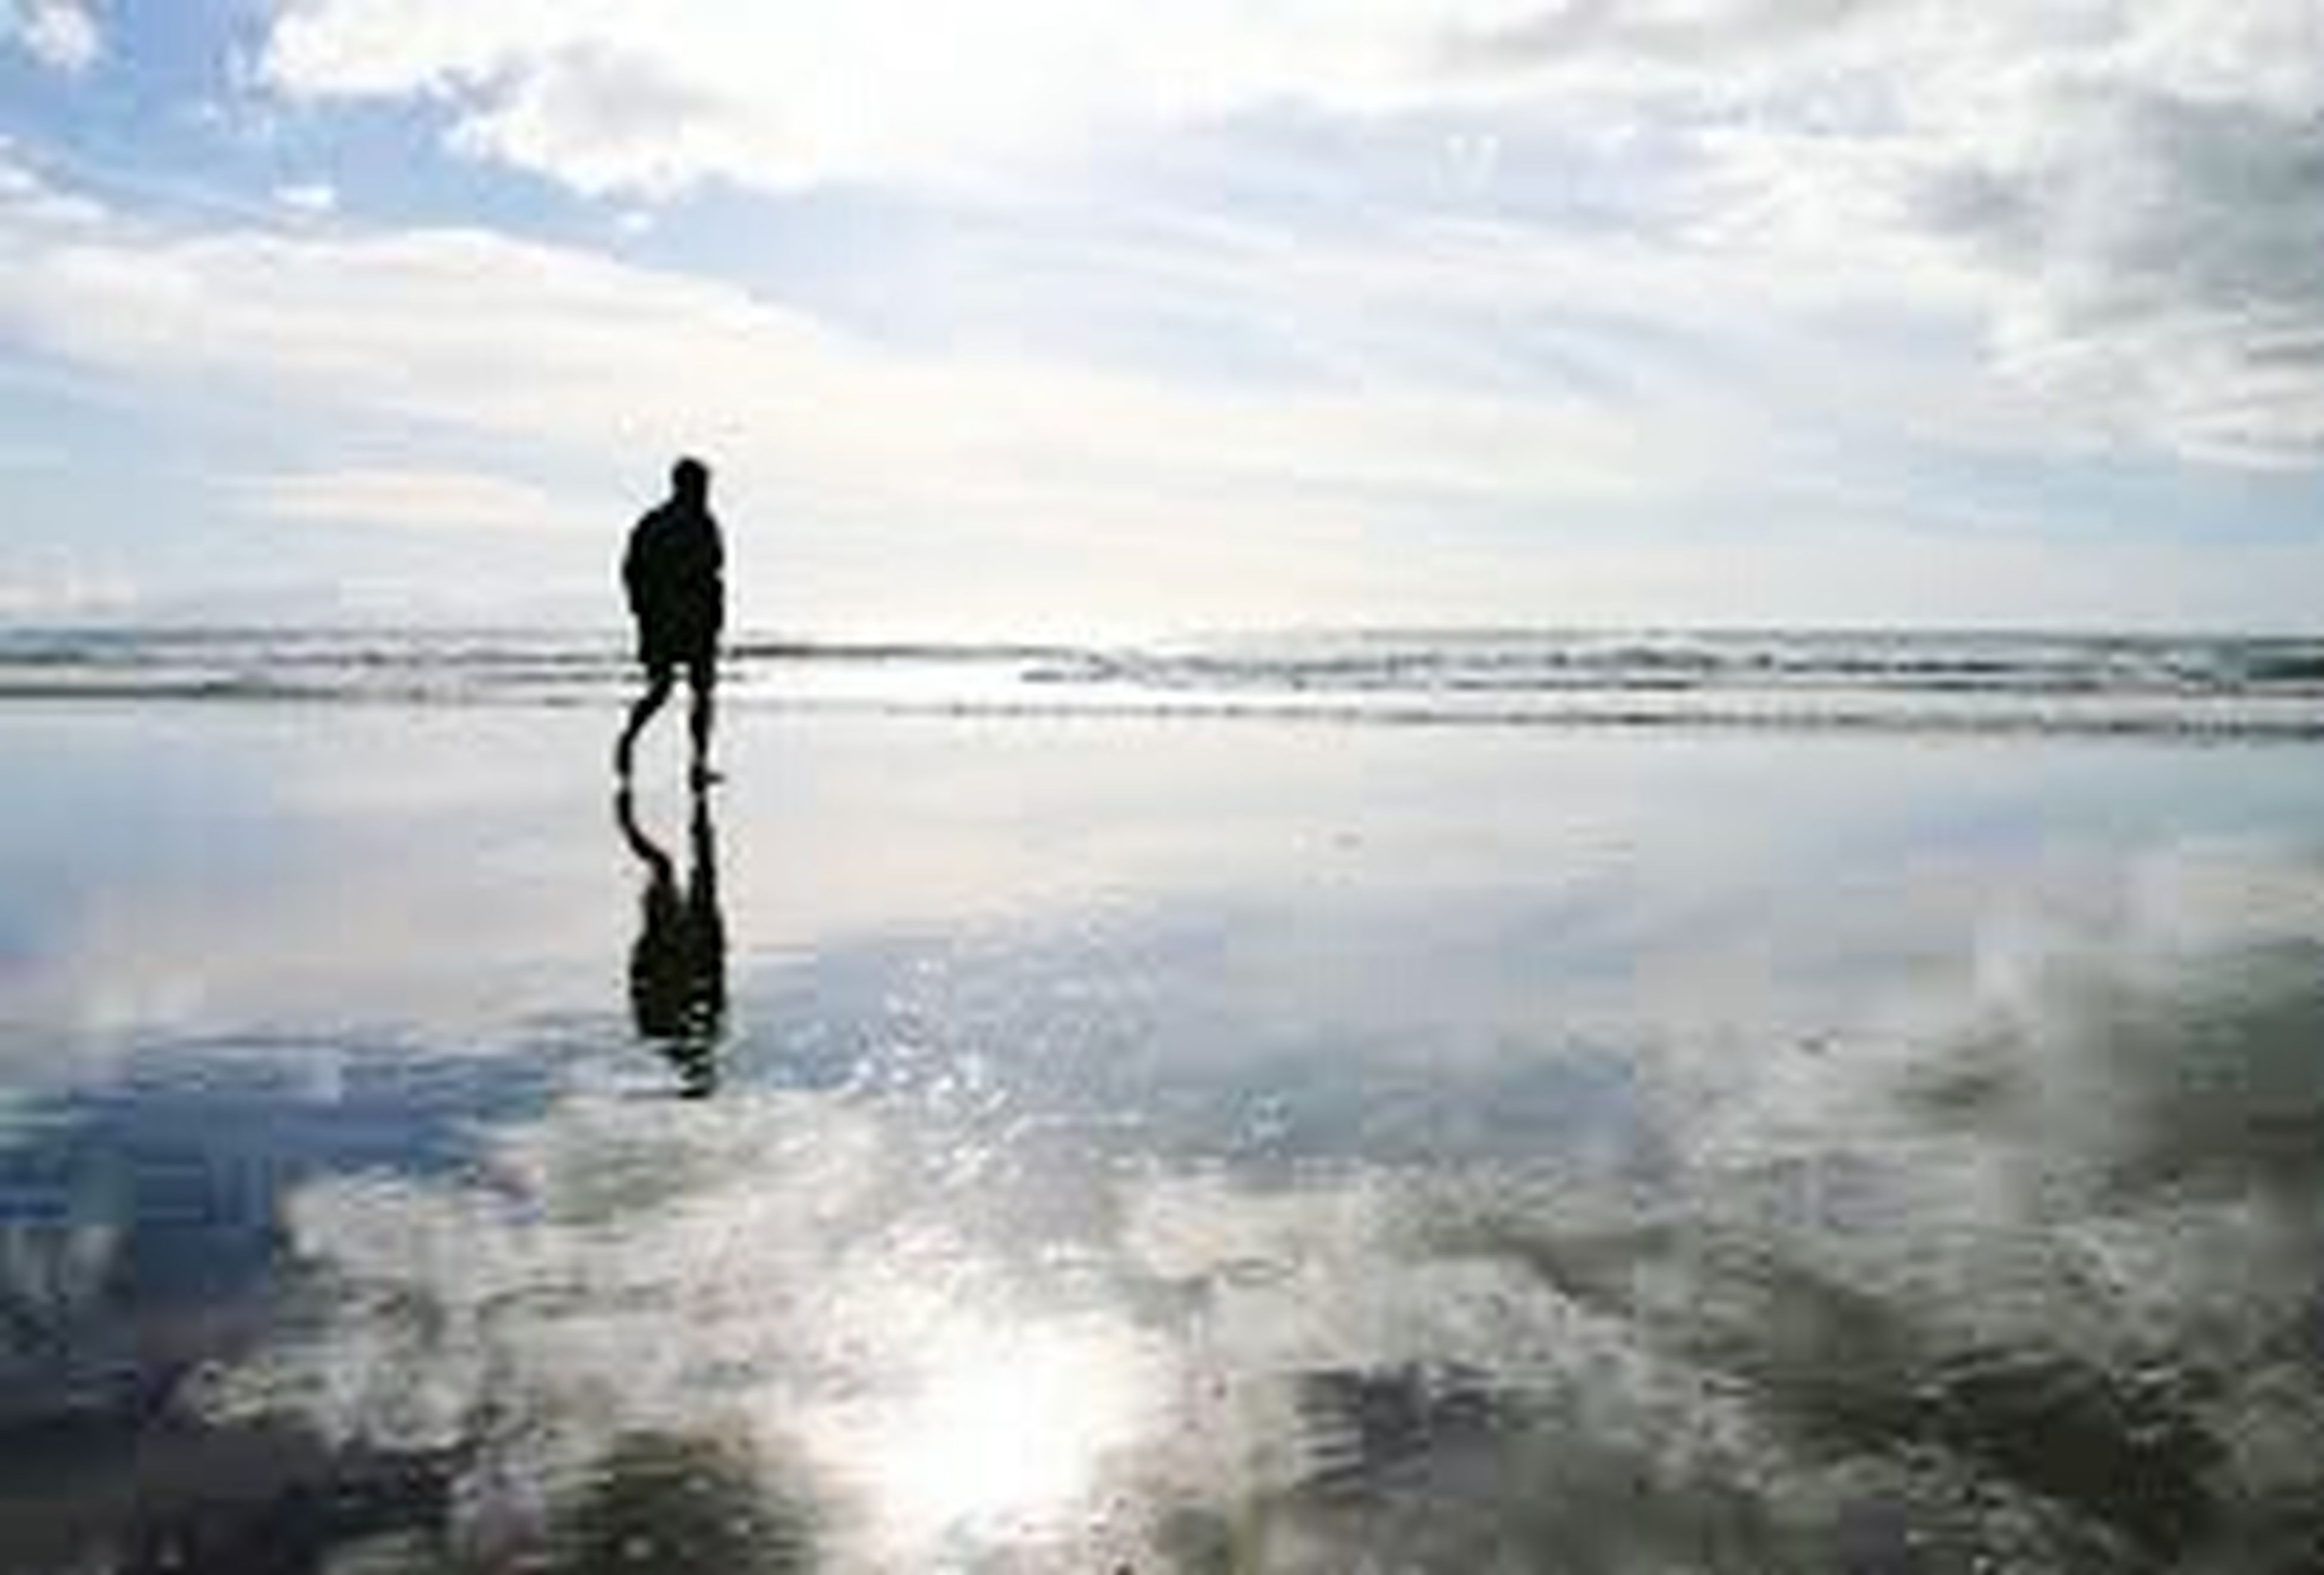 reflection, water, standing, beach, full length, sea, silhouette, horizon over water, tranquil scene, tranquility, vacations, scenics, leisure activity, idyllic, shore, calm, beauty in nature, sky, nature, relaxation, solitude, getting away from it all, escapism, remote, coastline, tourism, person, day, ocean